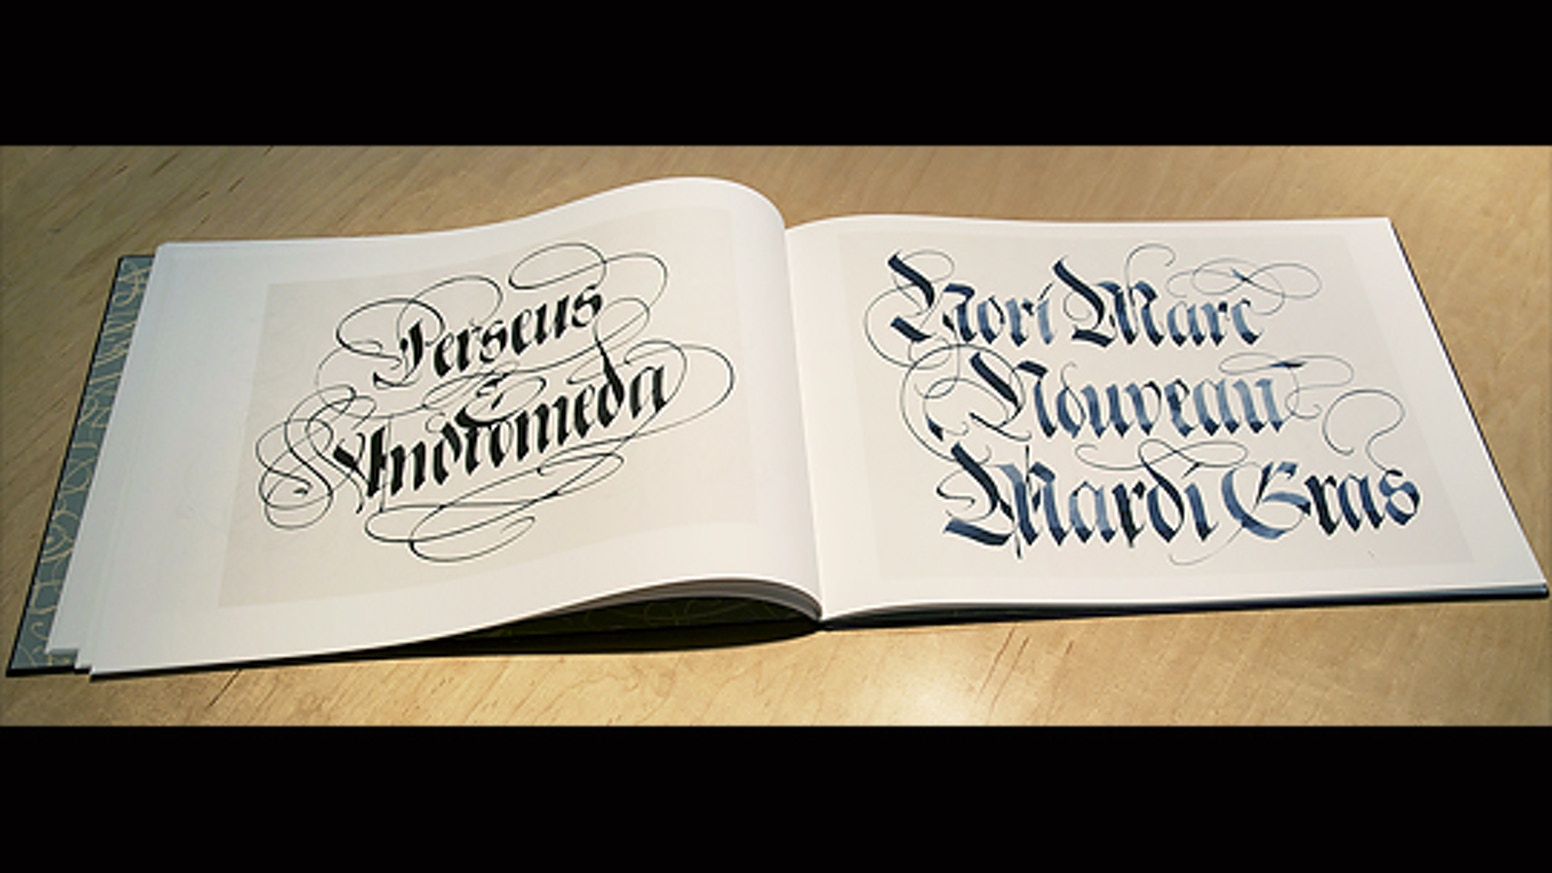 An Edition Of Handmade Books Showing The Pen Lettering Late Graphic Designer Calligrapher And Artist Raphael Boguslav